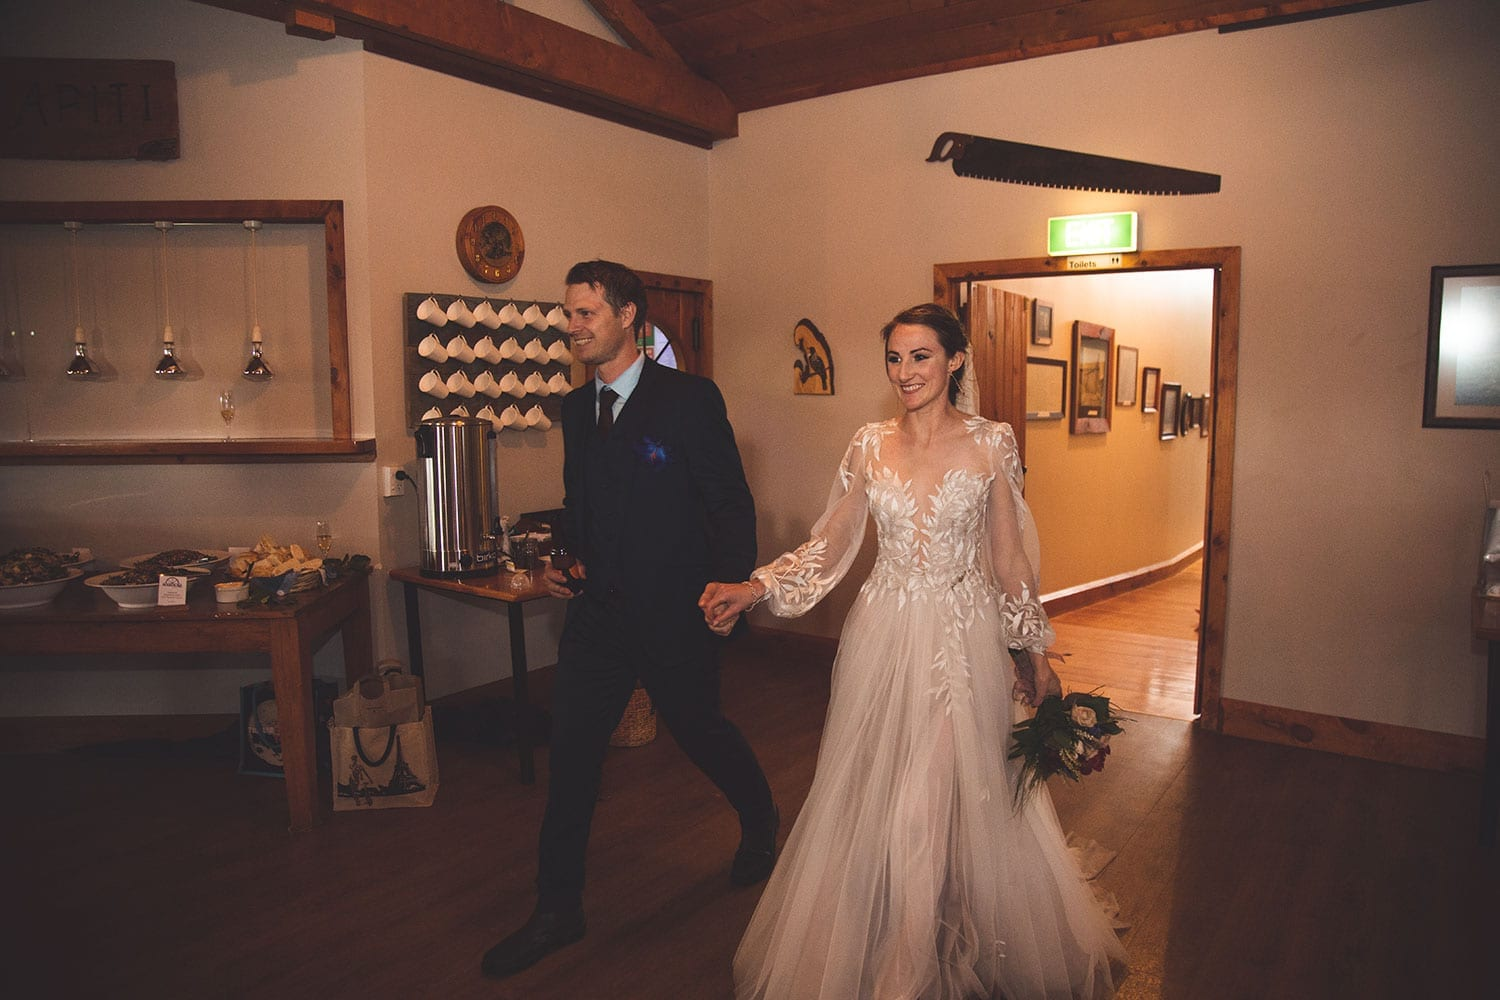 Vinka Design Features Real Weddings - bride in custom made gown, a combination of Isabelle and Ivy from our Heart of Havana collection. Bride and groom enter reception